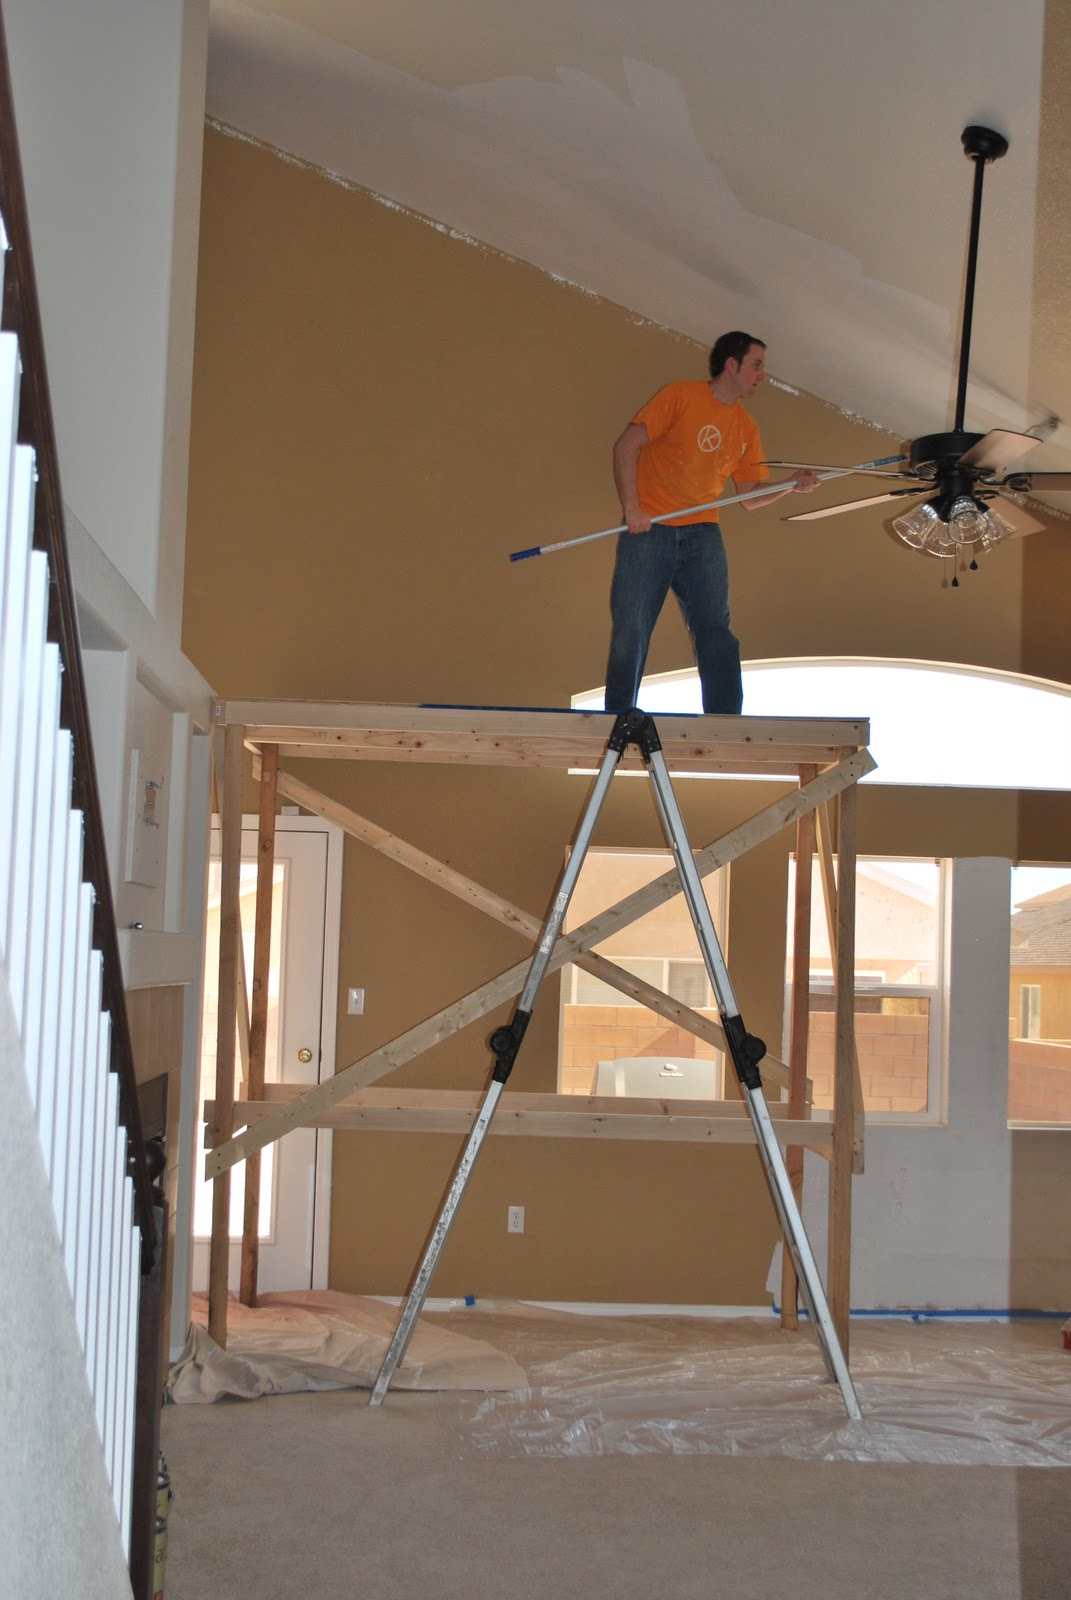 Painters Scaffolding Related Keywords - Painters ...